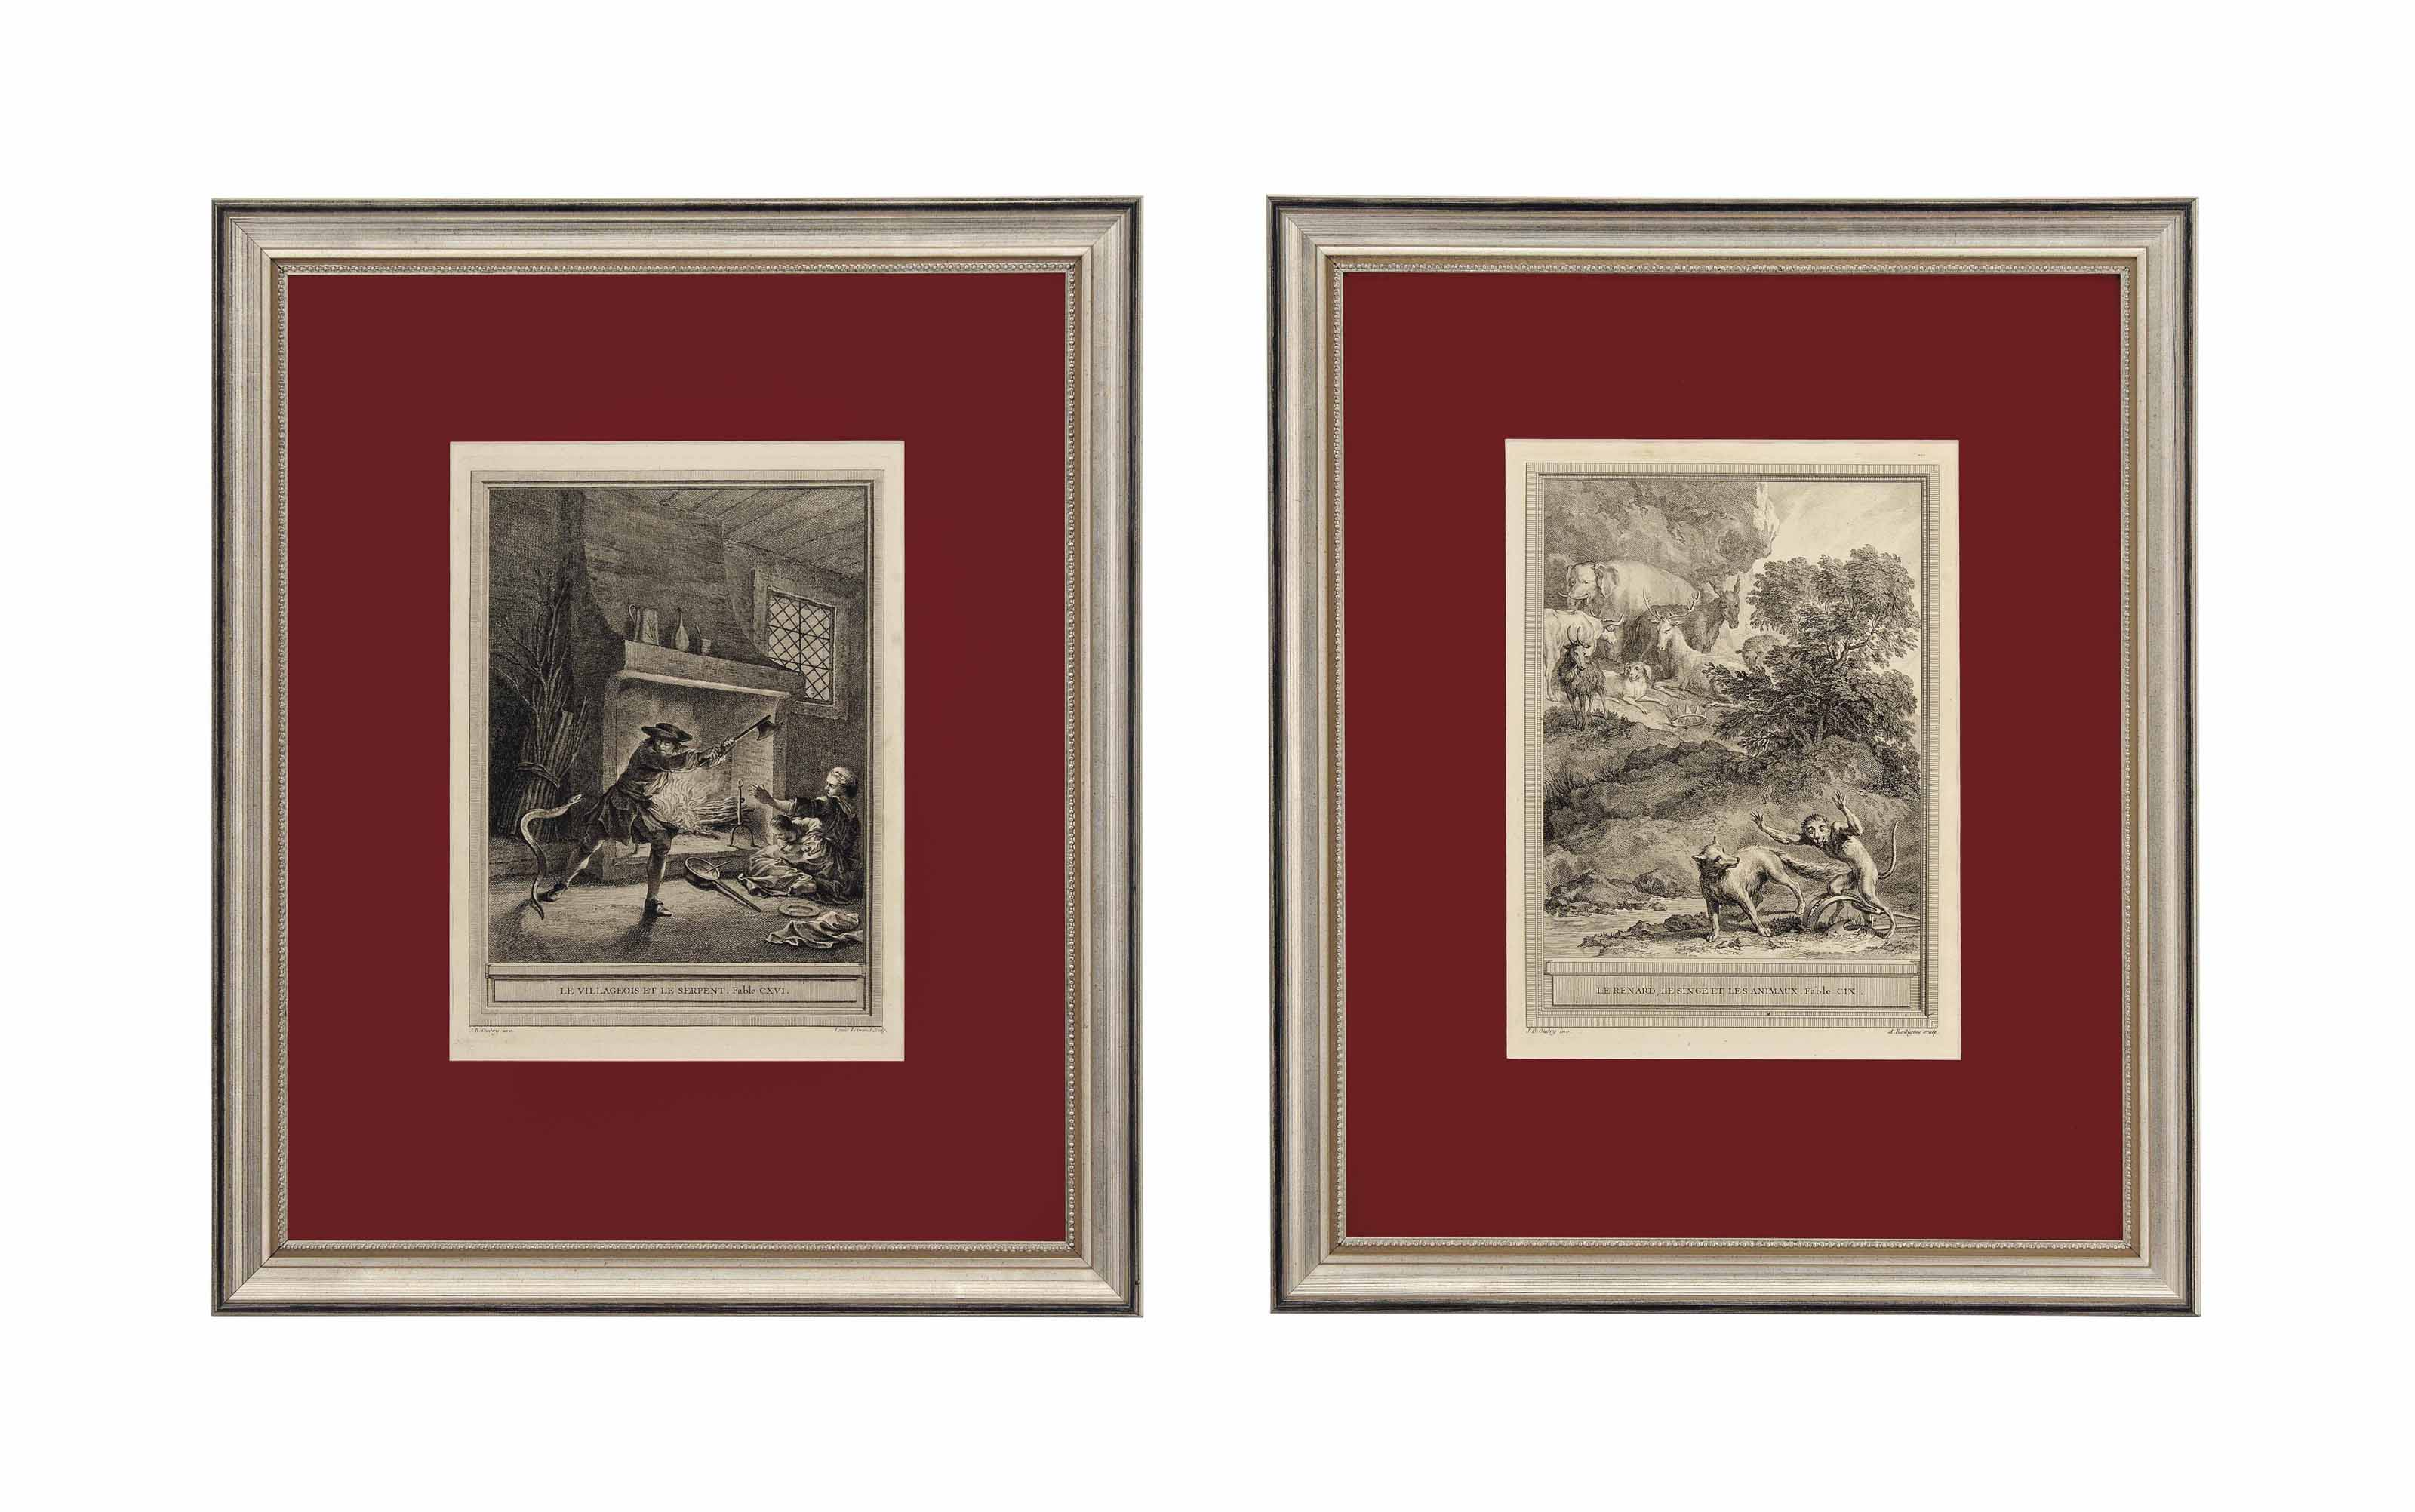 TEN FRENCH ENGRAVINGS OF LA FONTAINE'S FABLES